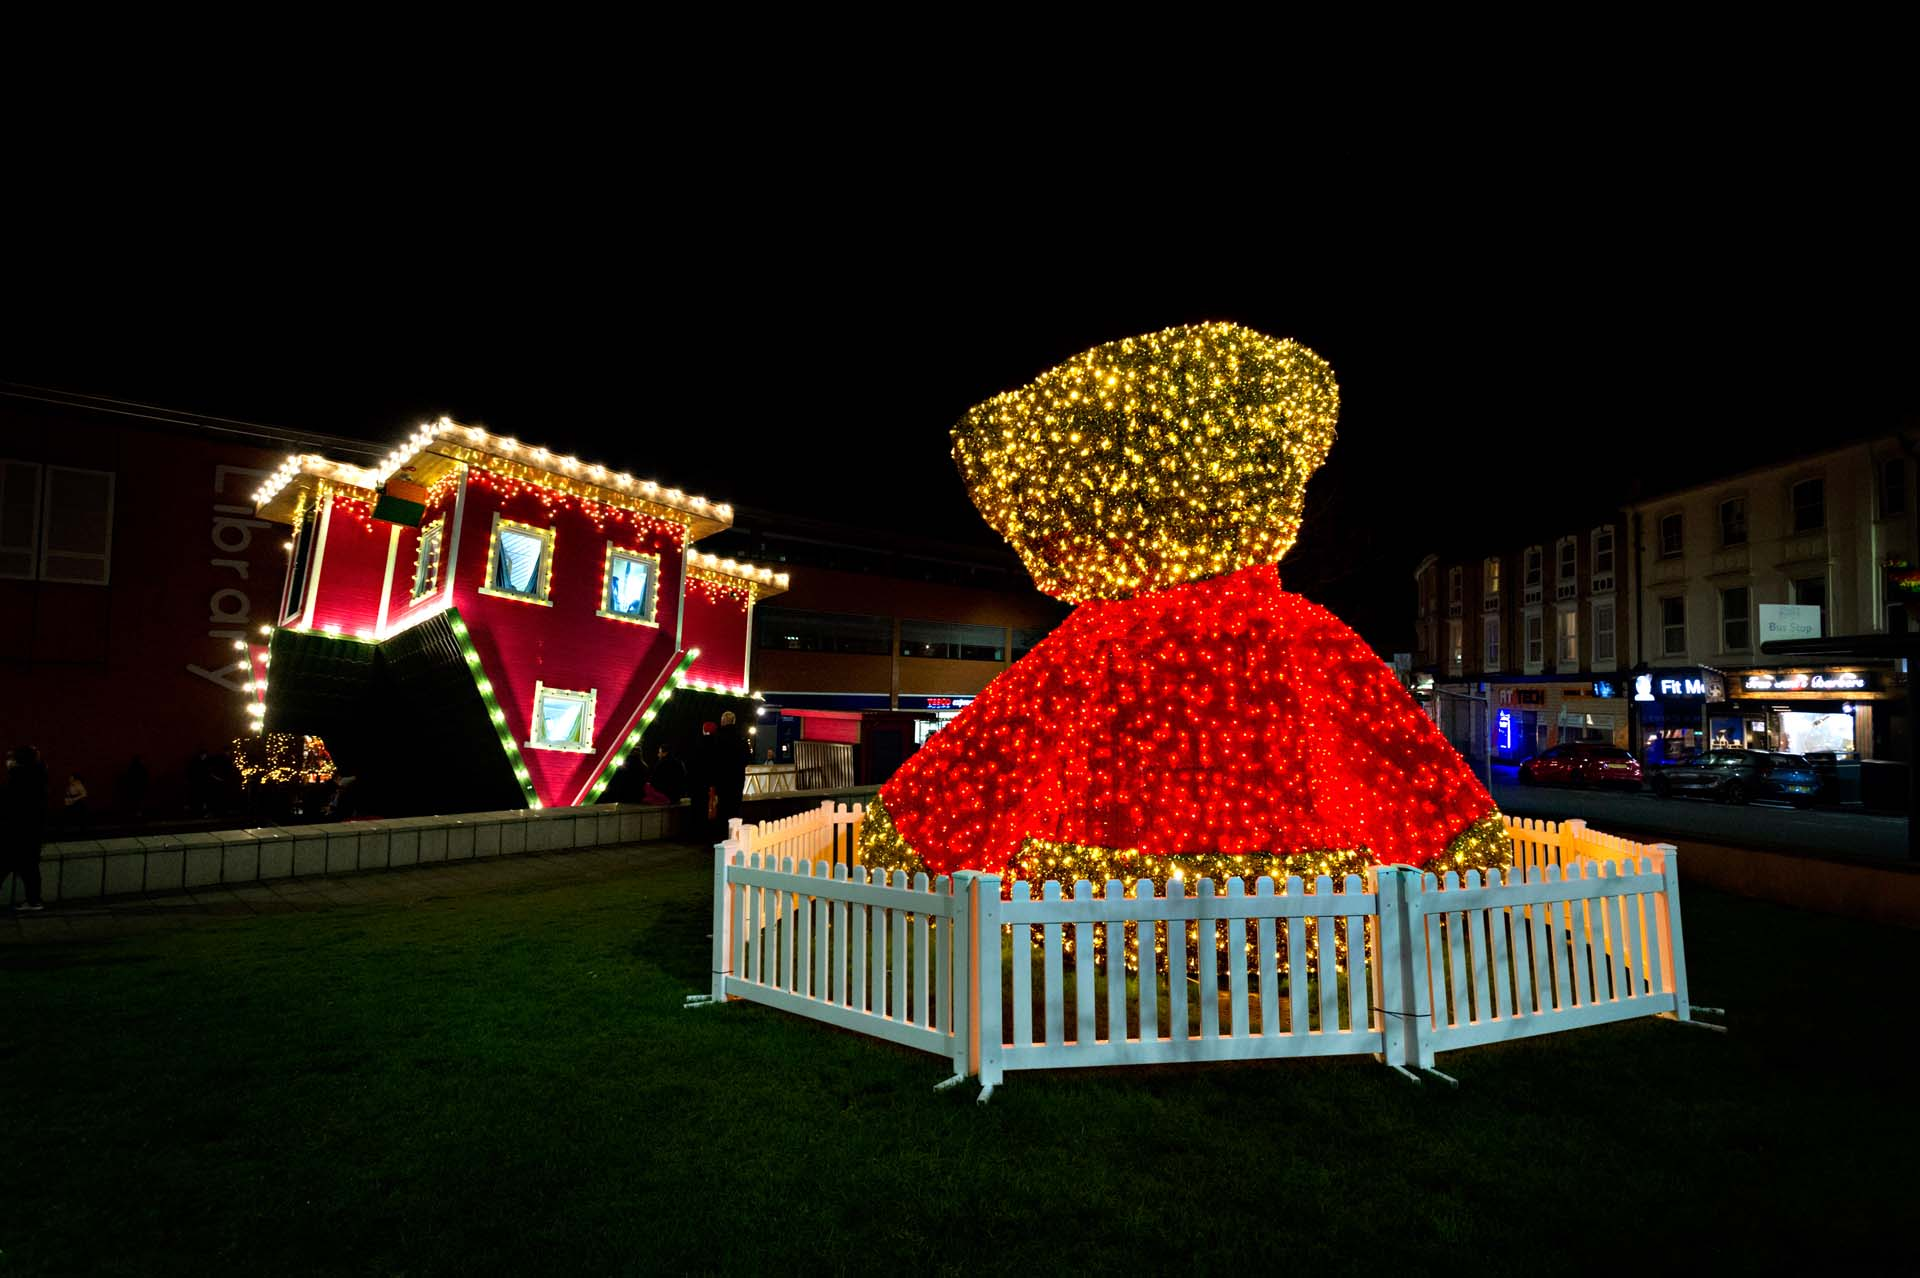 Night time shots of the Upside down house and teddy bear shining bright in the night